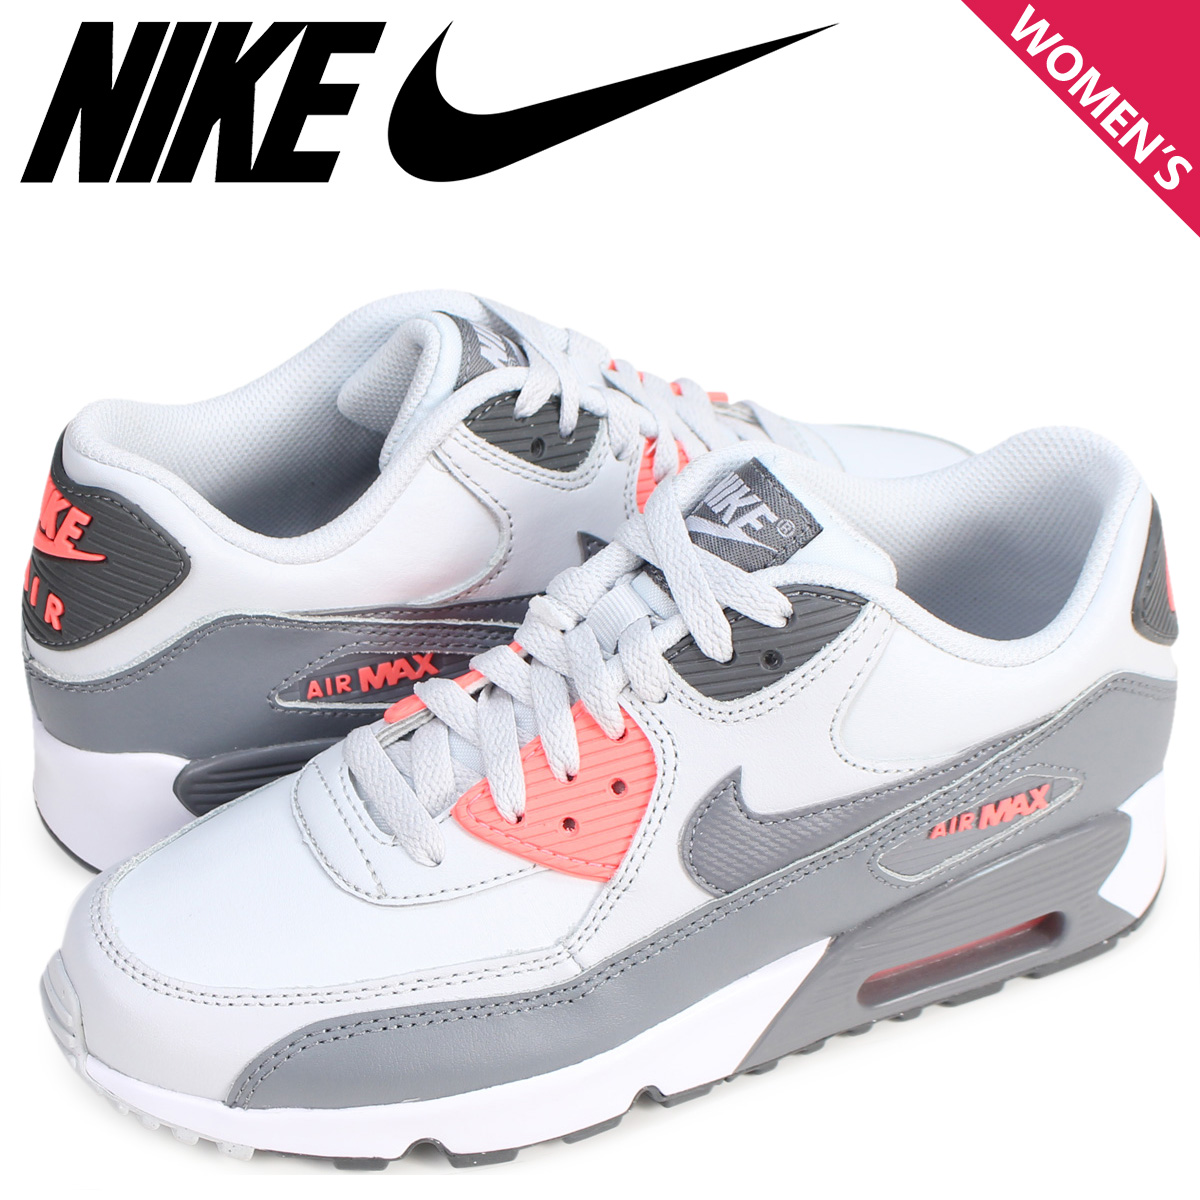 pretty nice a8e64 010ee ALLSPORTS   Rakuten Global Market  NIKE Kie Ney AMAX 90 Lady s sneakers AIR  MAX 90 LTR GS 833,376-006 shoes white  5 11 Shinnyu load   175